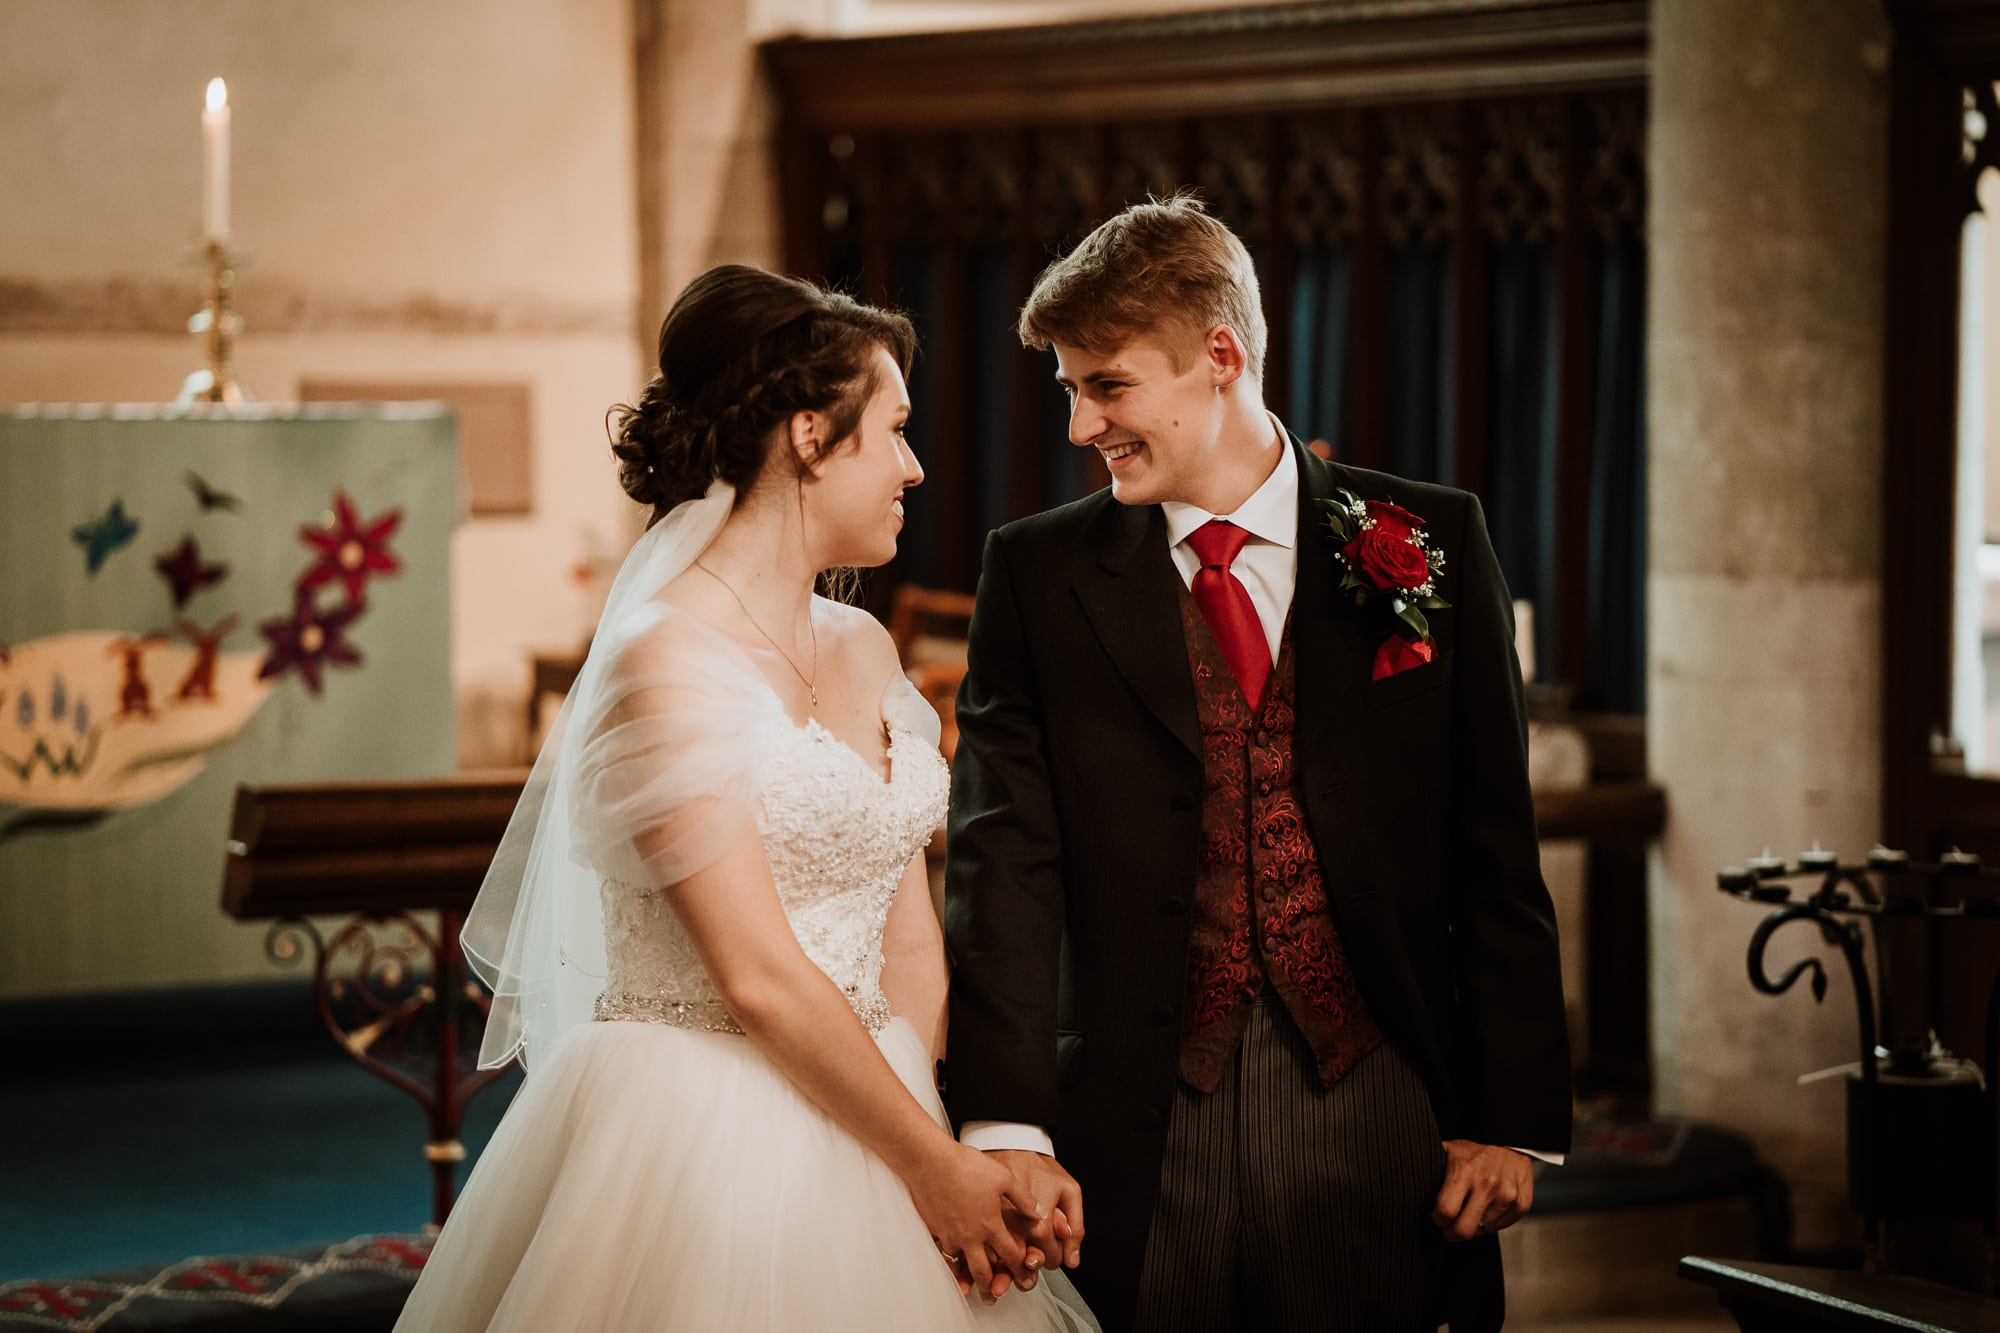 Bride and Groom holding hands and smiling at each other in the Church